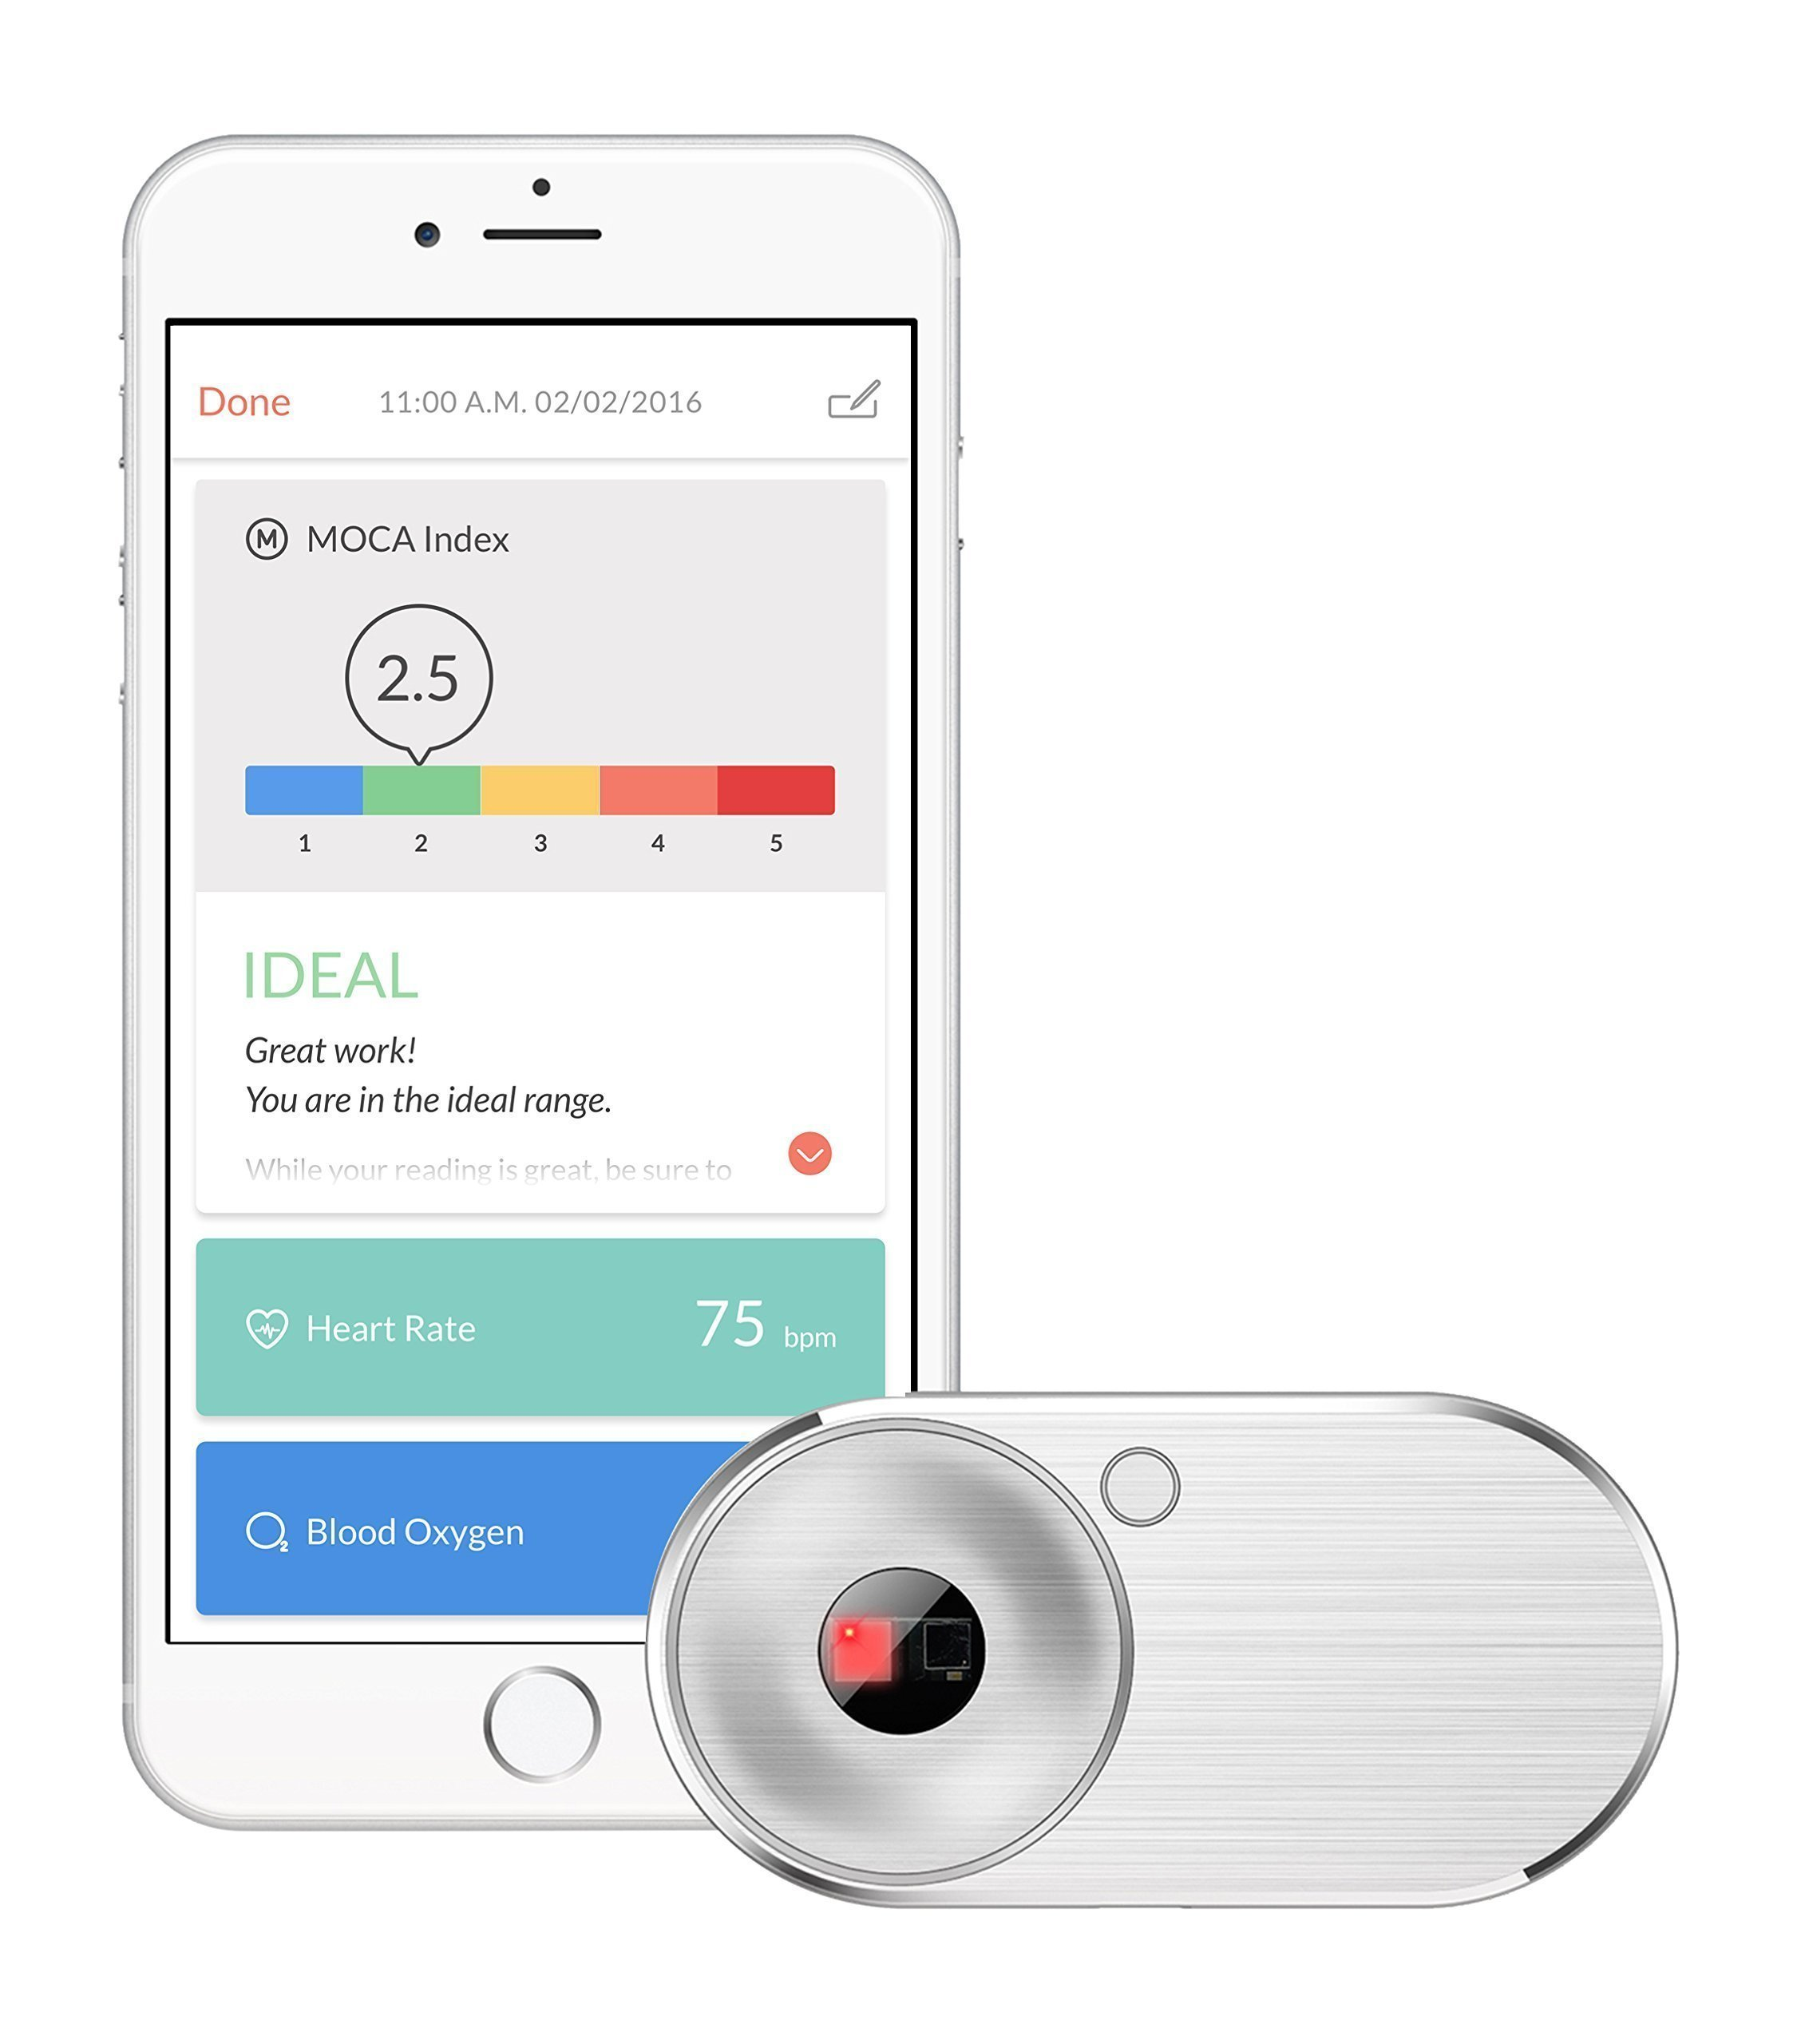 MOCAheart - Personal Heart Health Tracker (Heart Rate, Blood Oxygen, Blood Velocity) for iOS and Android